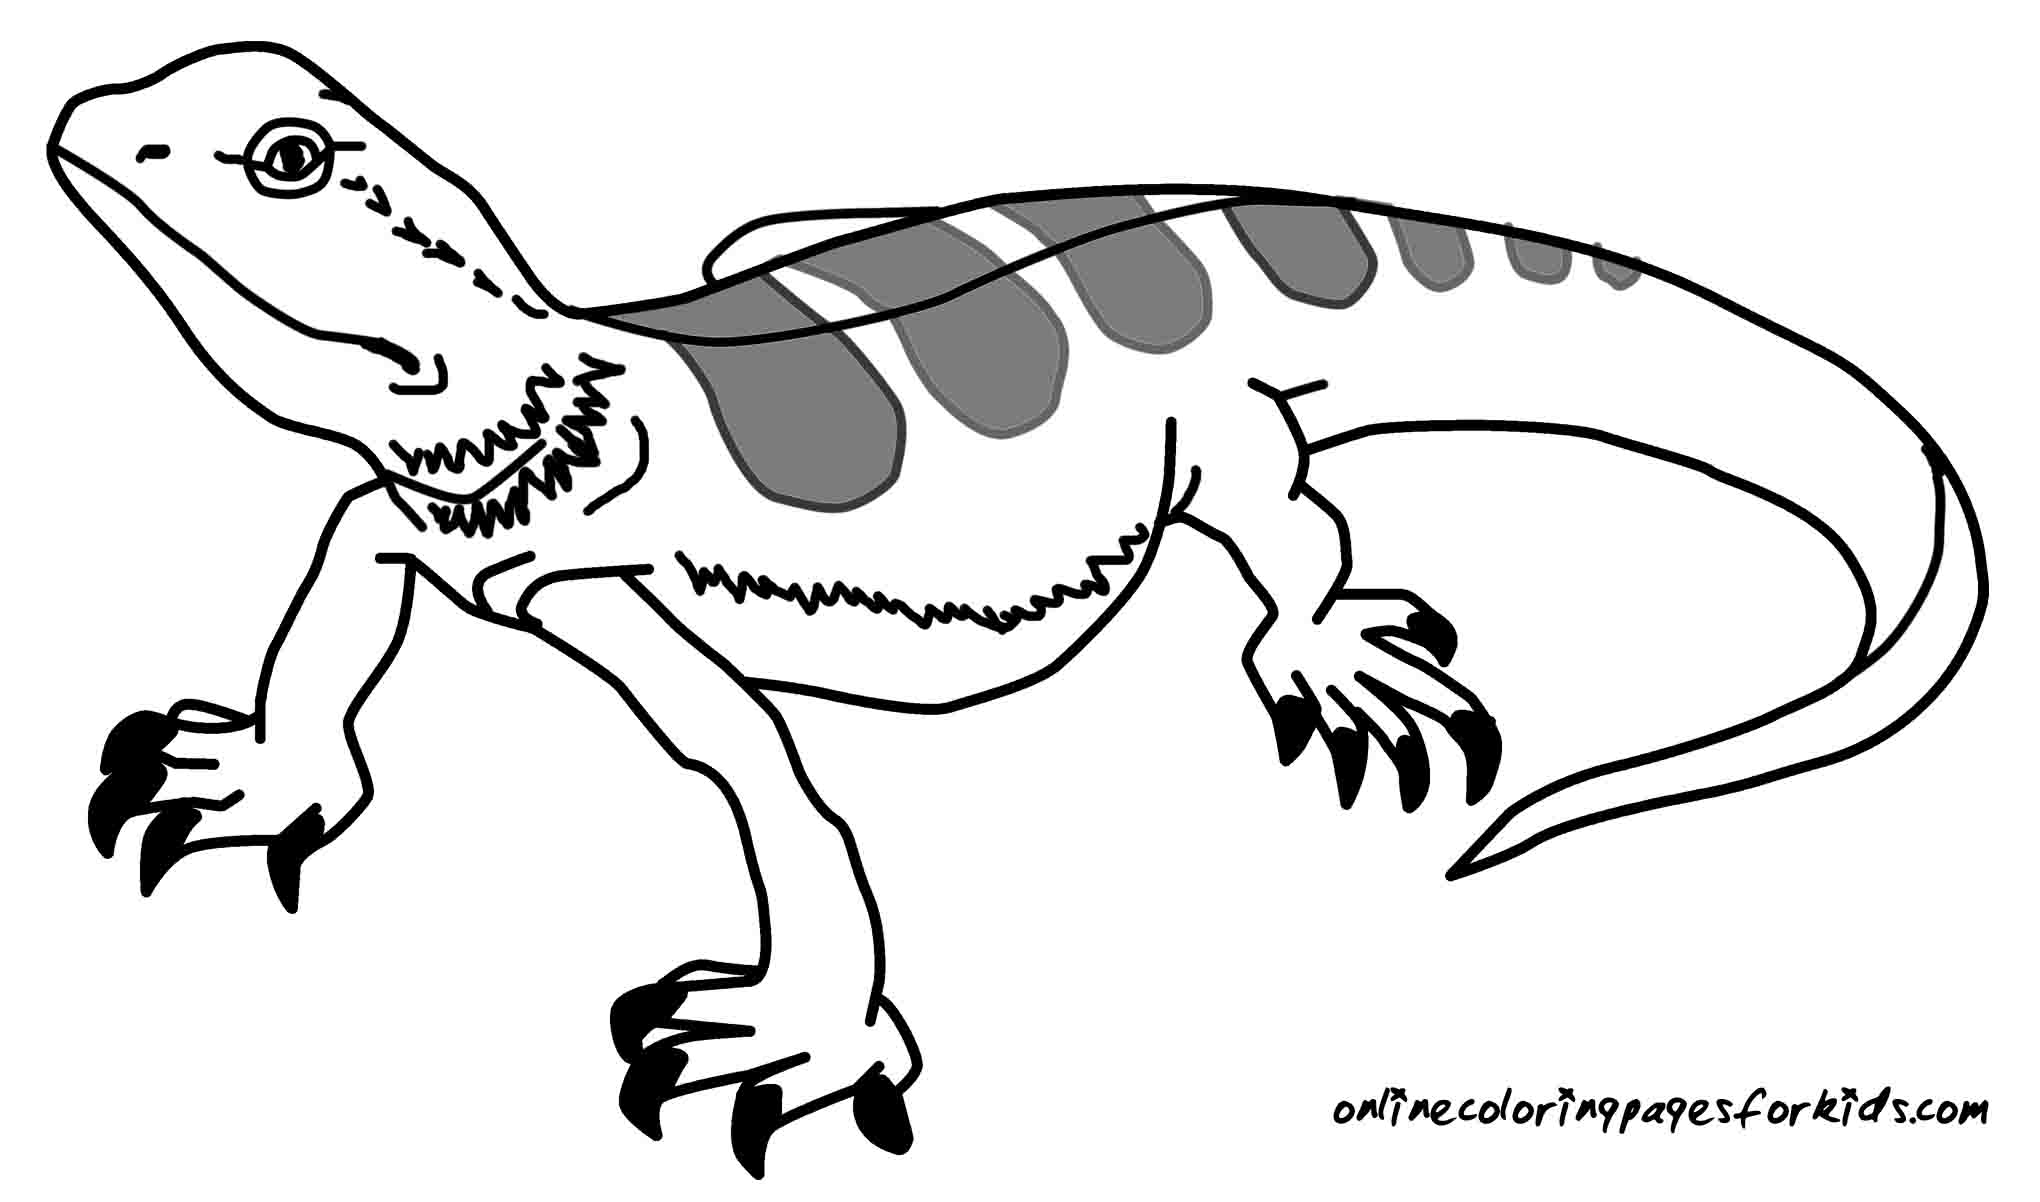 Lizards coloring pages to print - Lizard Coloring Pages Printable Printable Coloring Pages